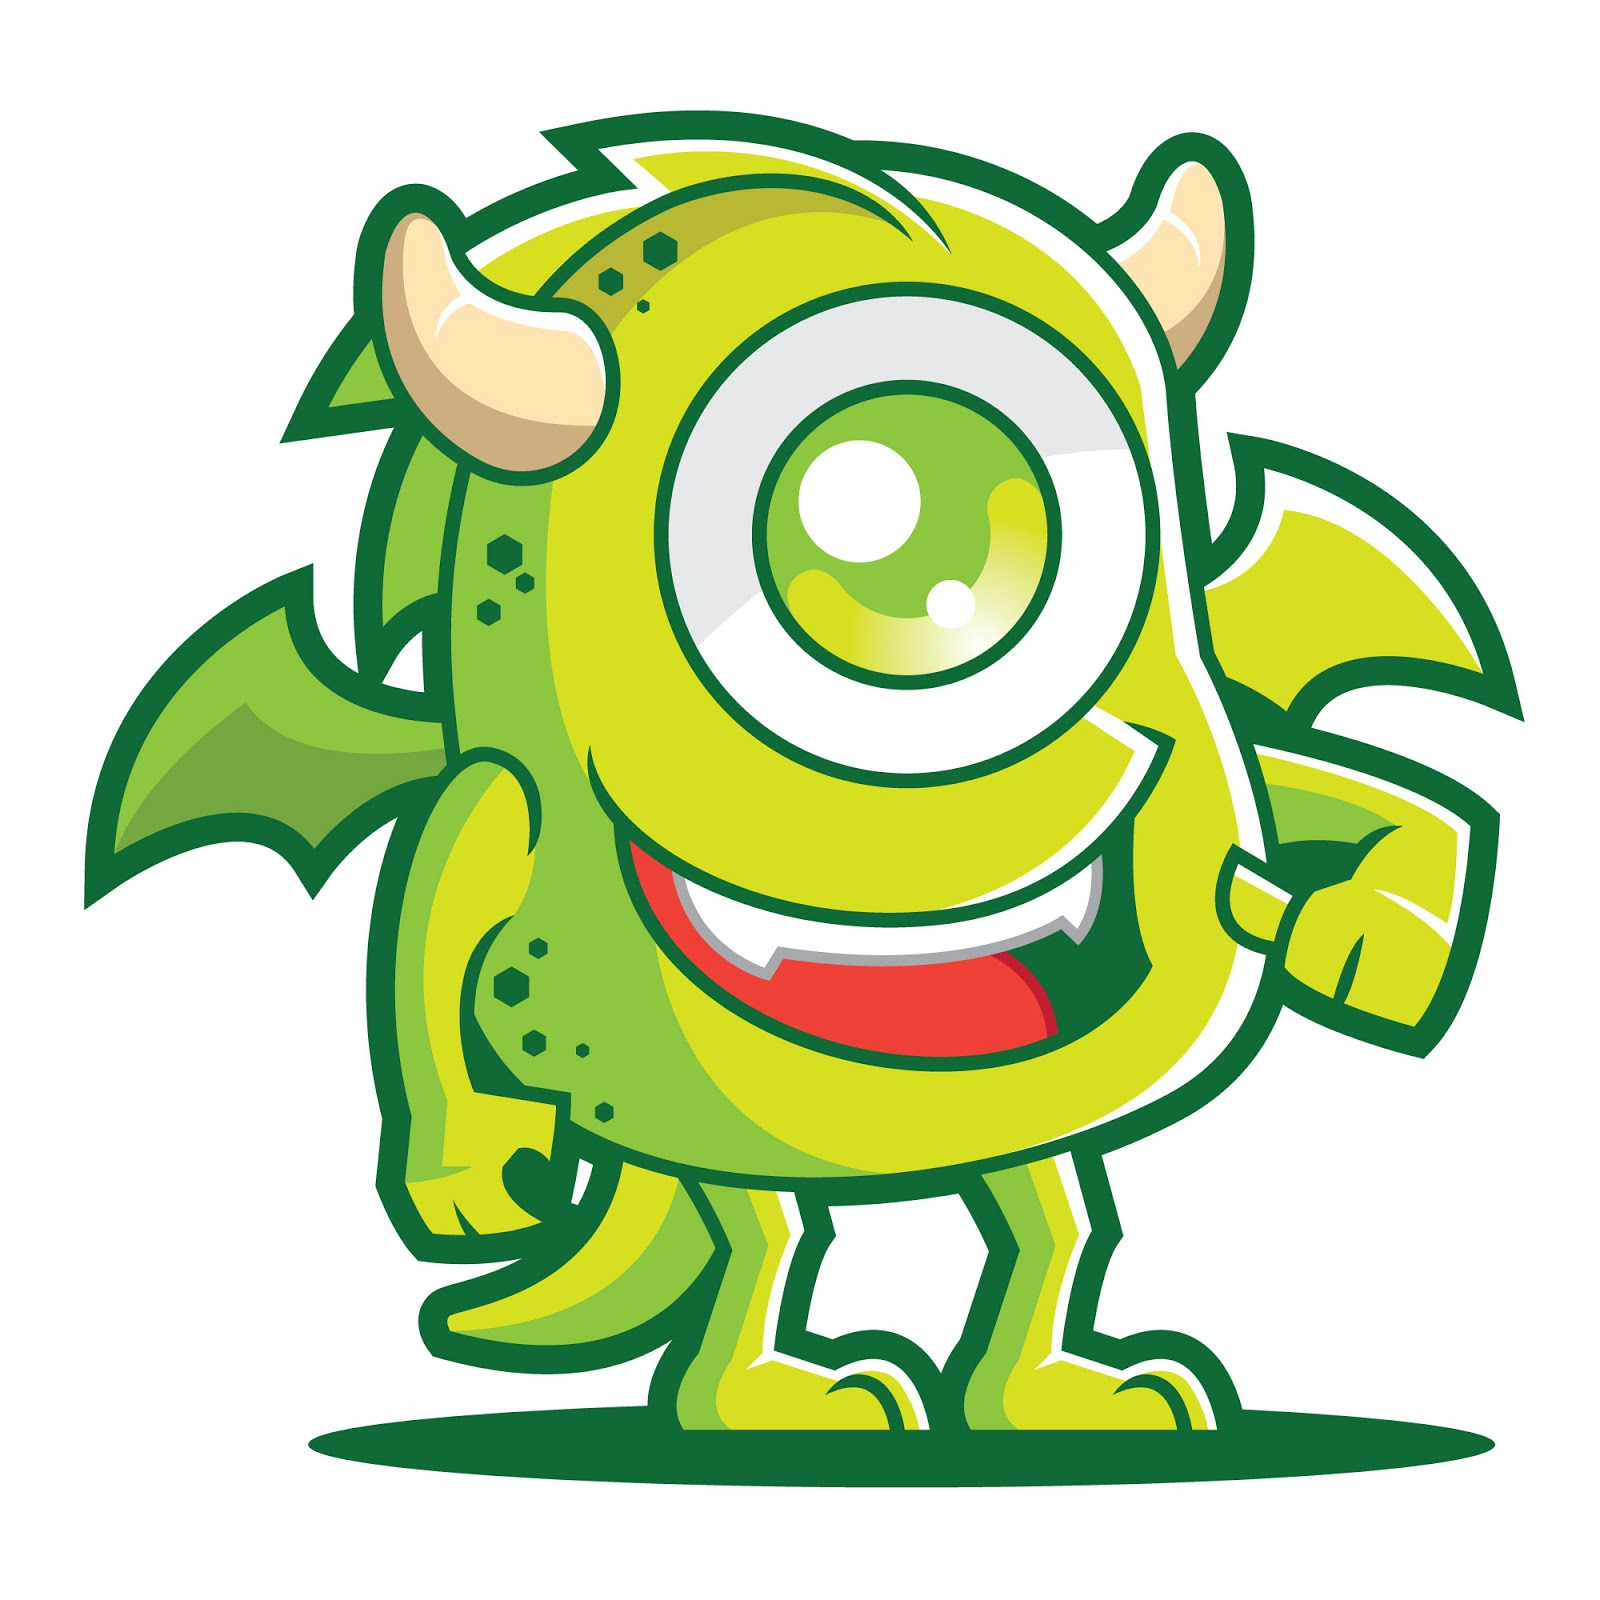 Monster Mascot Logo Free Download Vector CDR, AI, EPS and PNG Formats